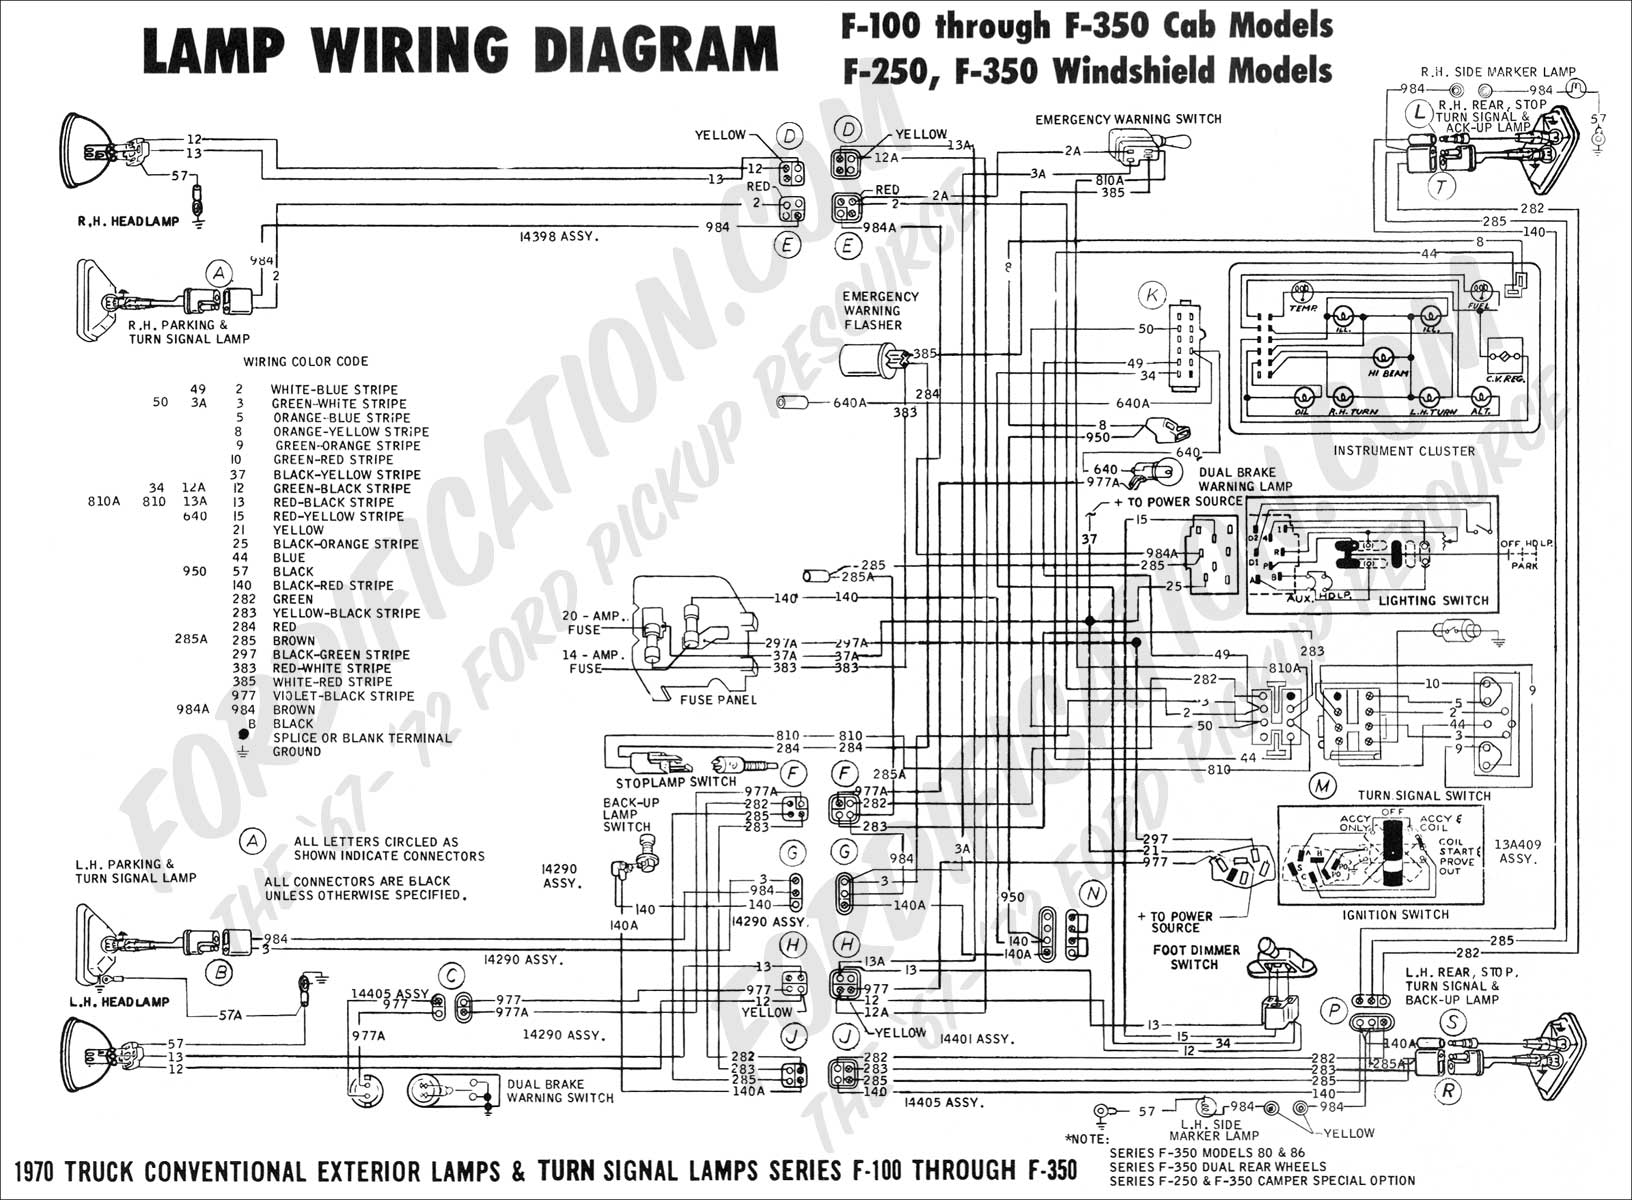 wiring diagram_70ext lights01 2008 ford f250 wiring diagram 2008 ford f250 remote start wiring 2008 ford f250 tail light wiring diagram at suagrazia.org